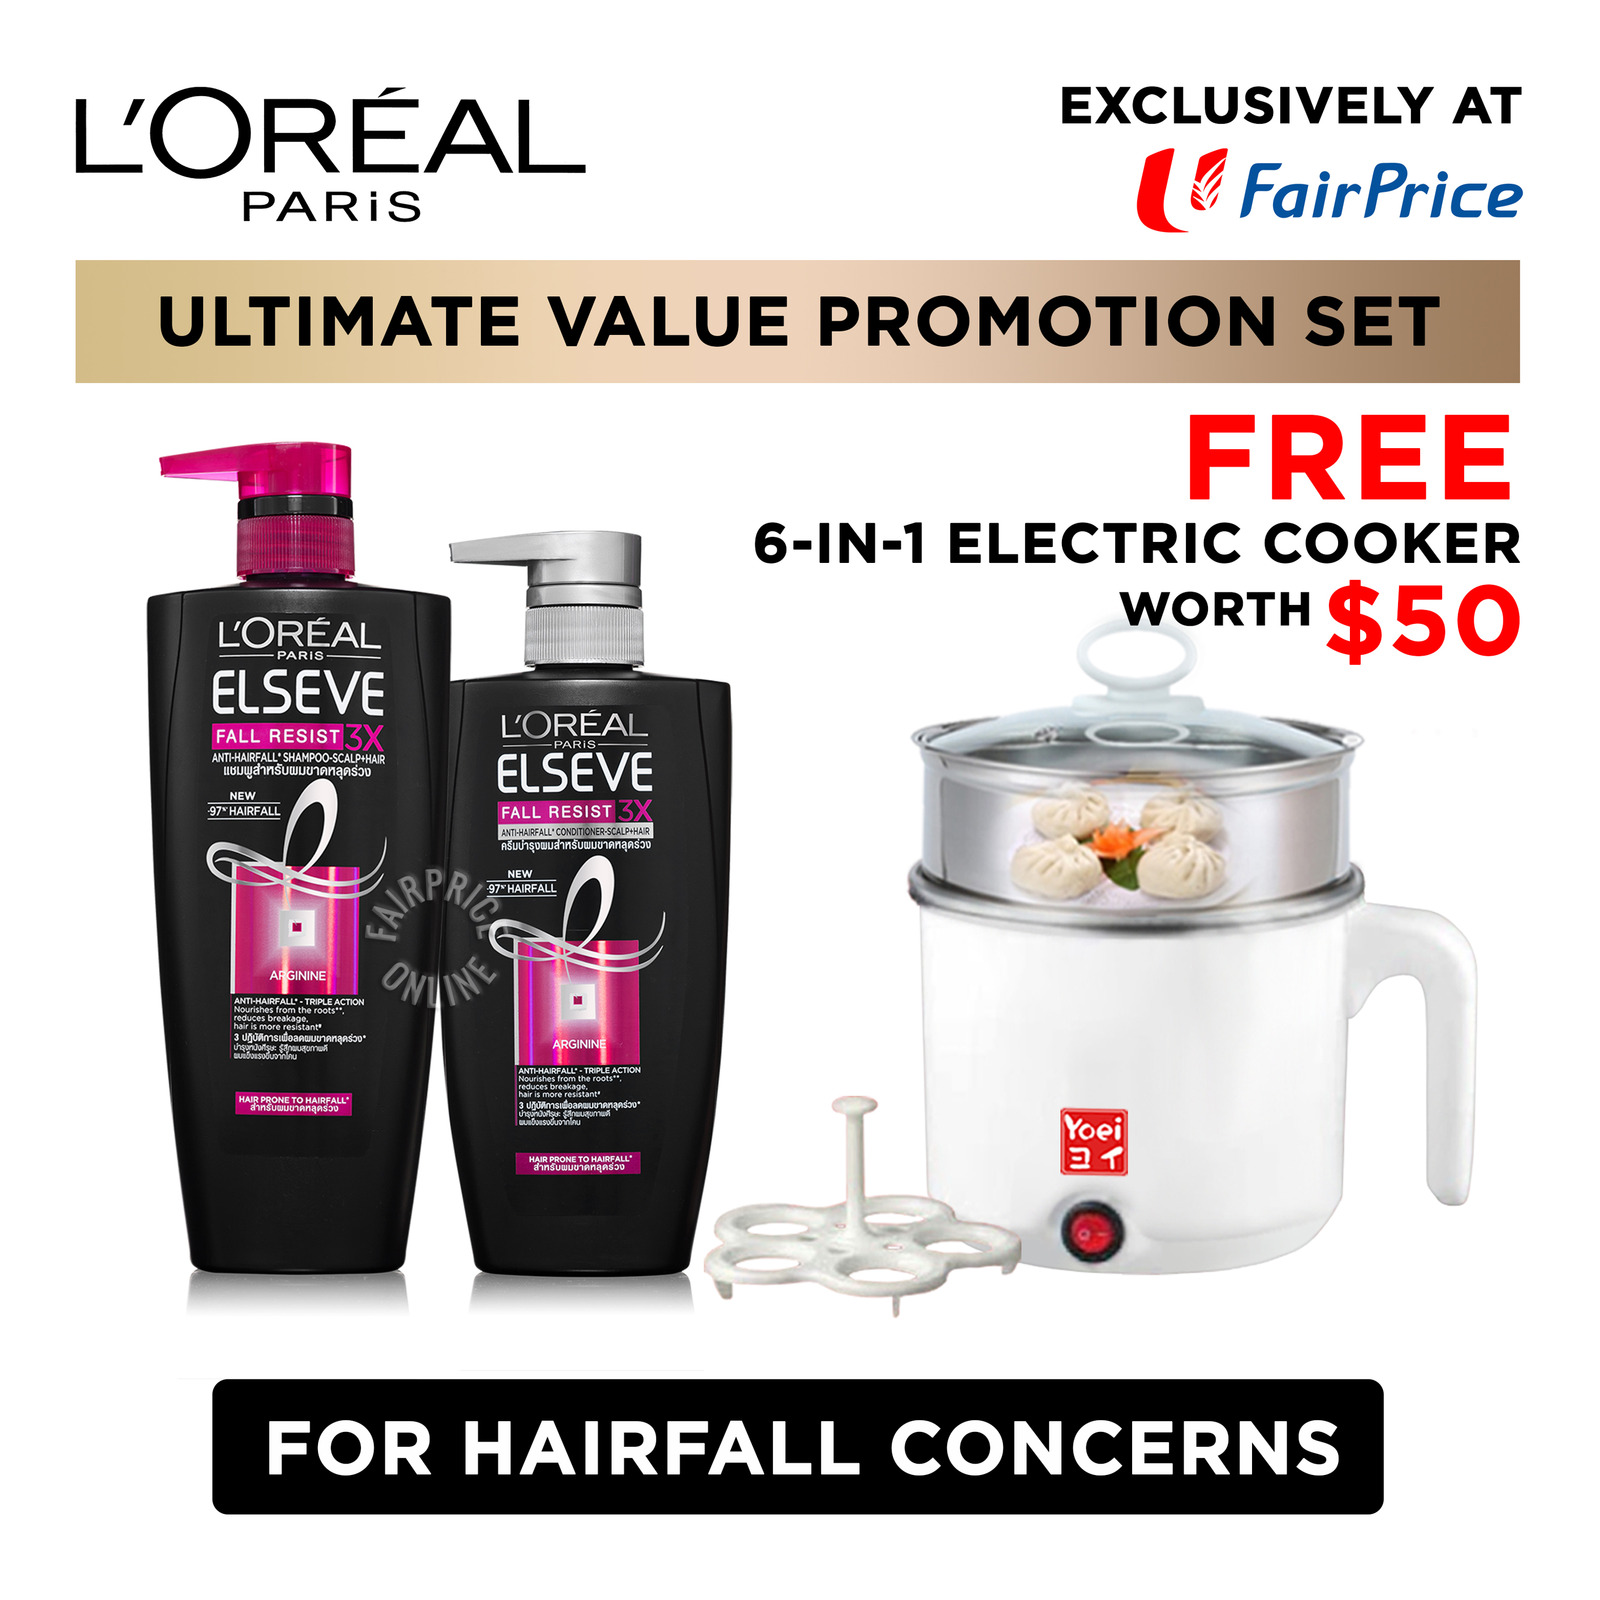 L'Oreal Paris Elseve Shampoo & Conditioner - Fall Resist